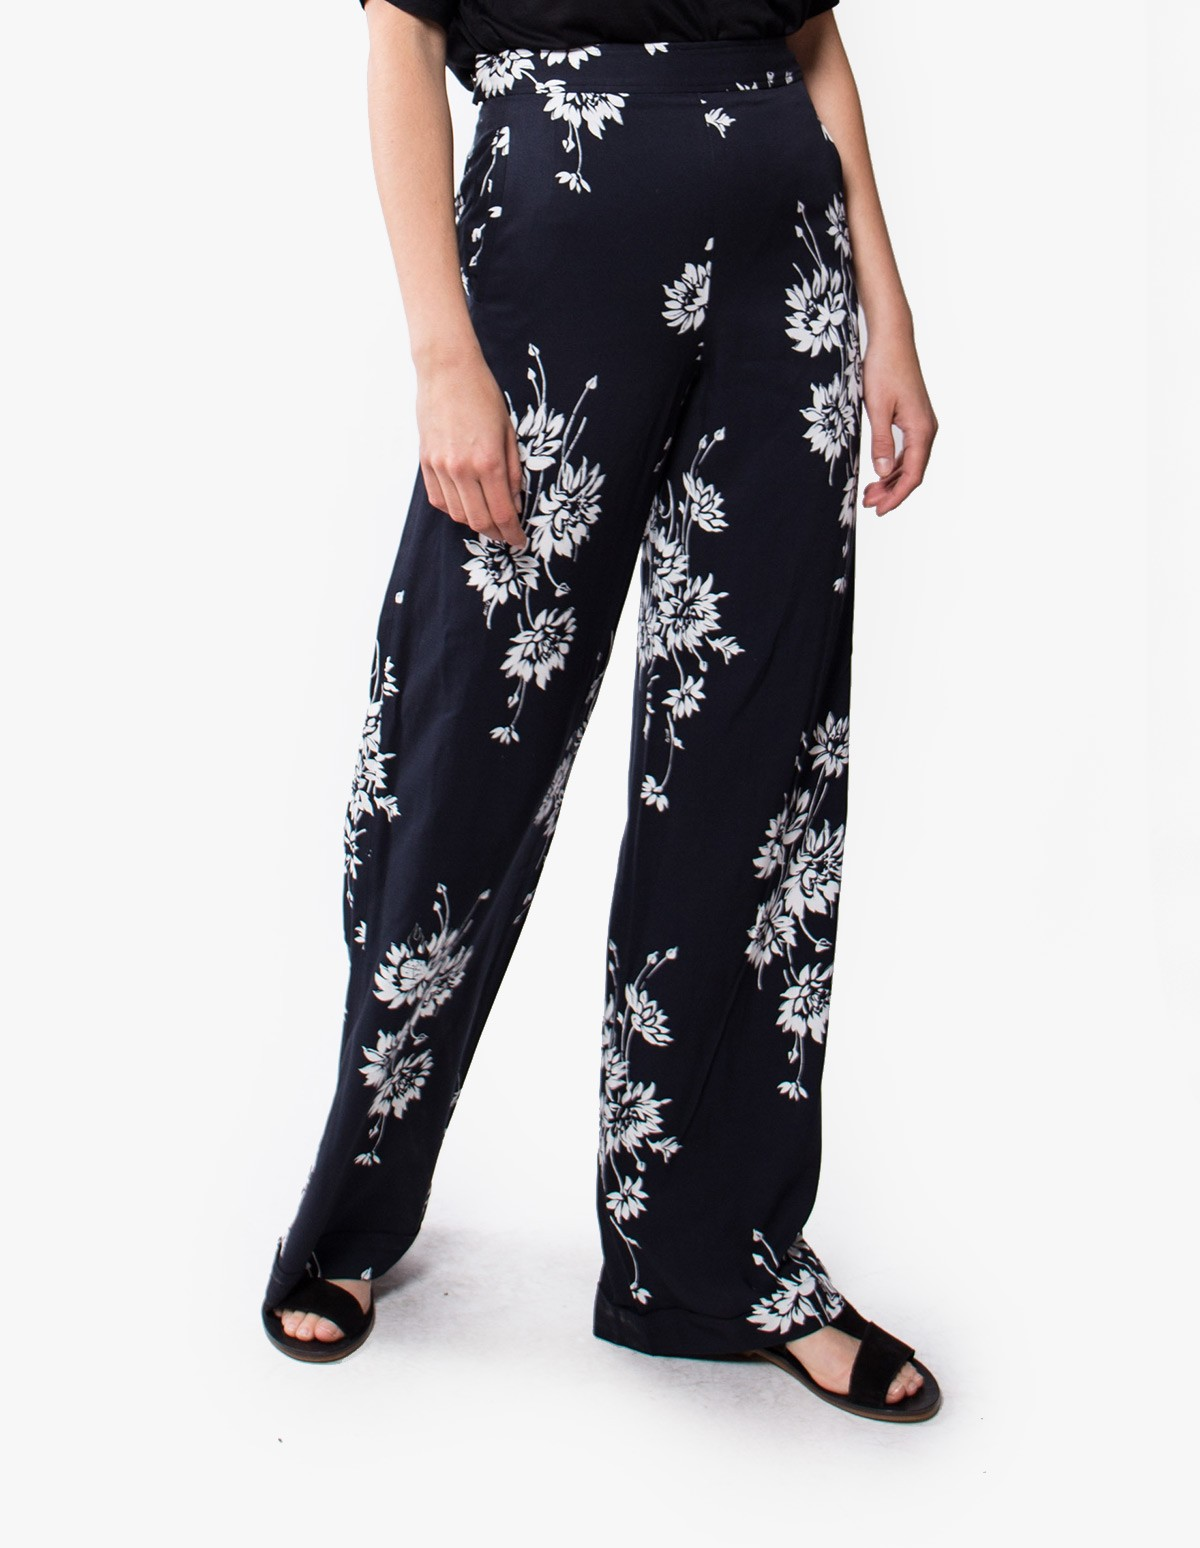 McQ Alexander McQueen Flaming Delilah Trousers  in Black